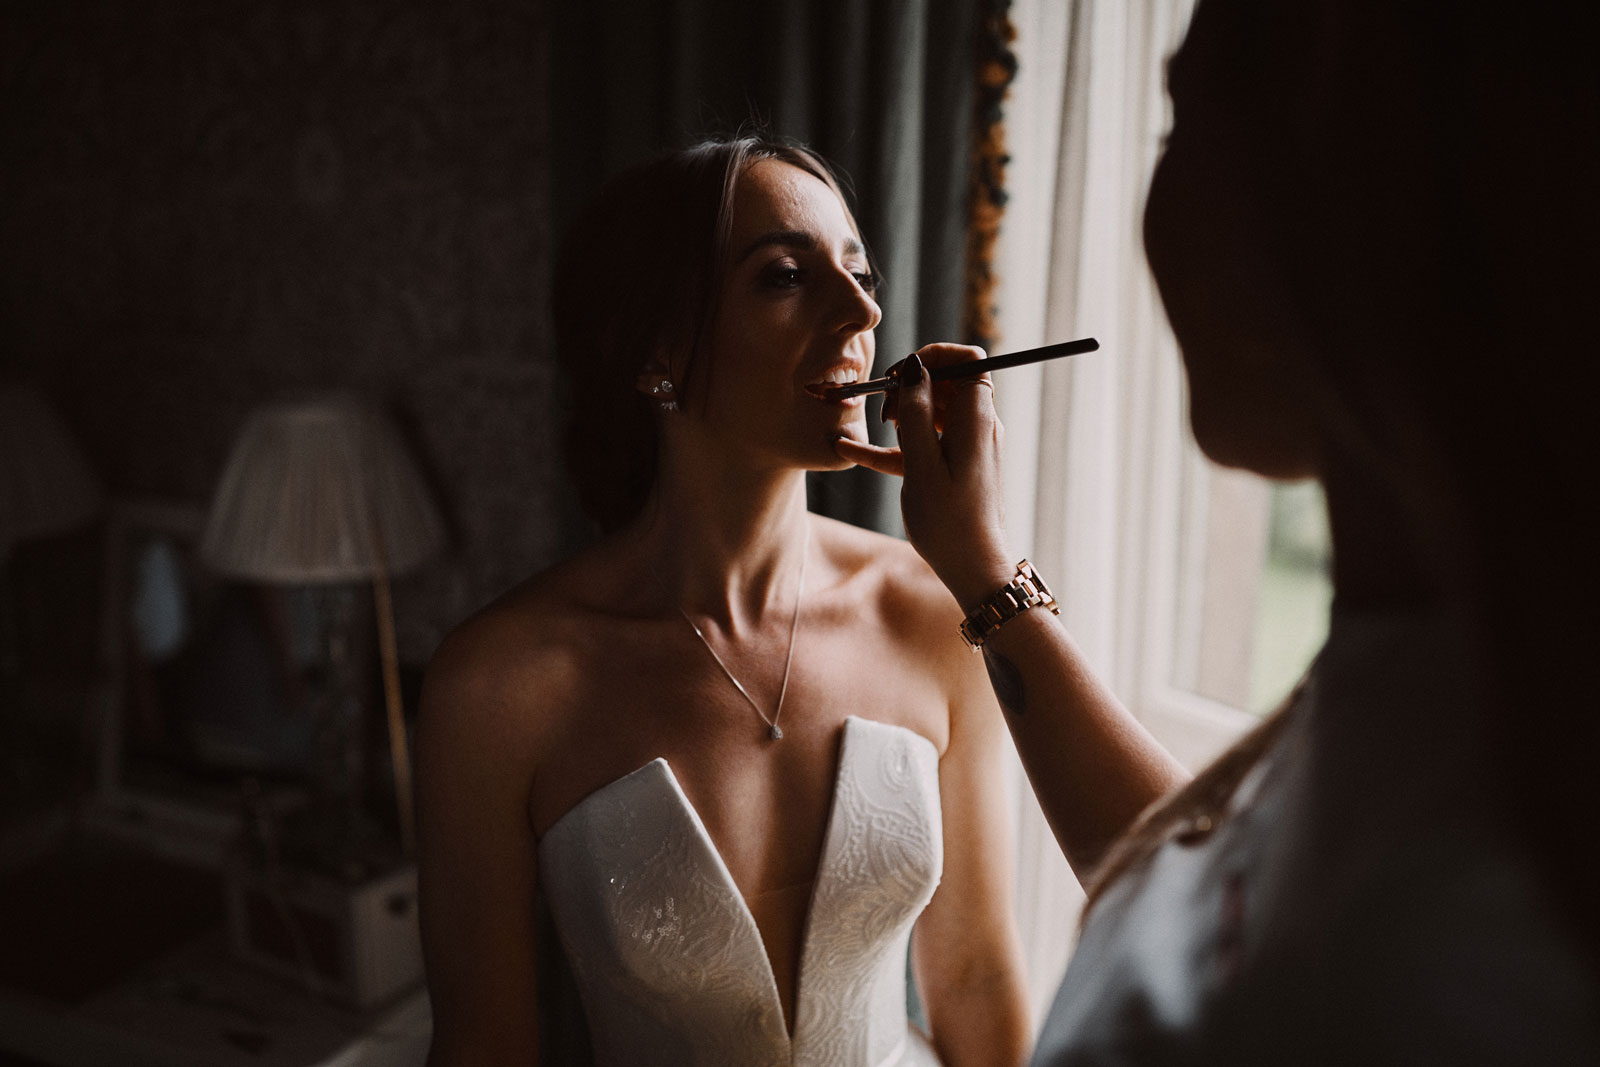 bride, bridal, bride style, being a bride, brides to be, bride to be, bridal style, style bride, bridal styling, bridal photography, wedding day